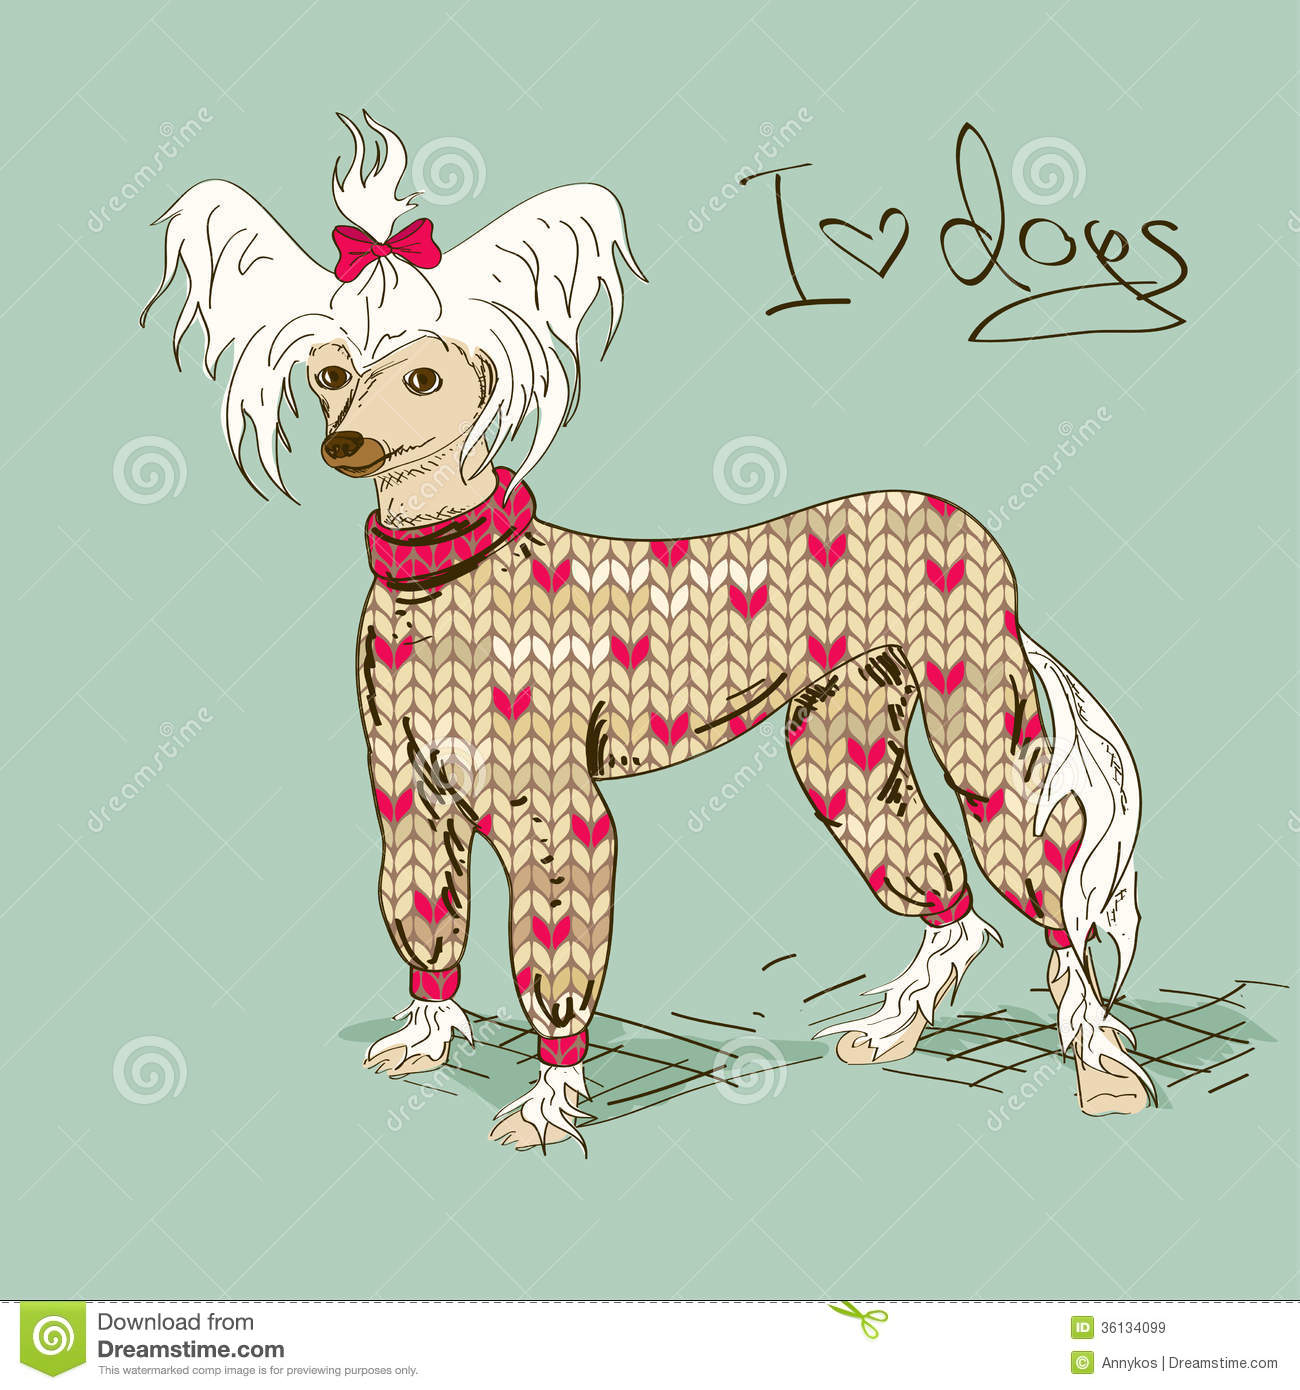 Chinese Crested Dog clipart #2, Download drawings